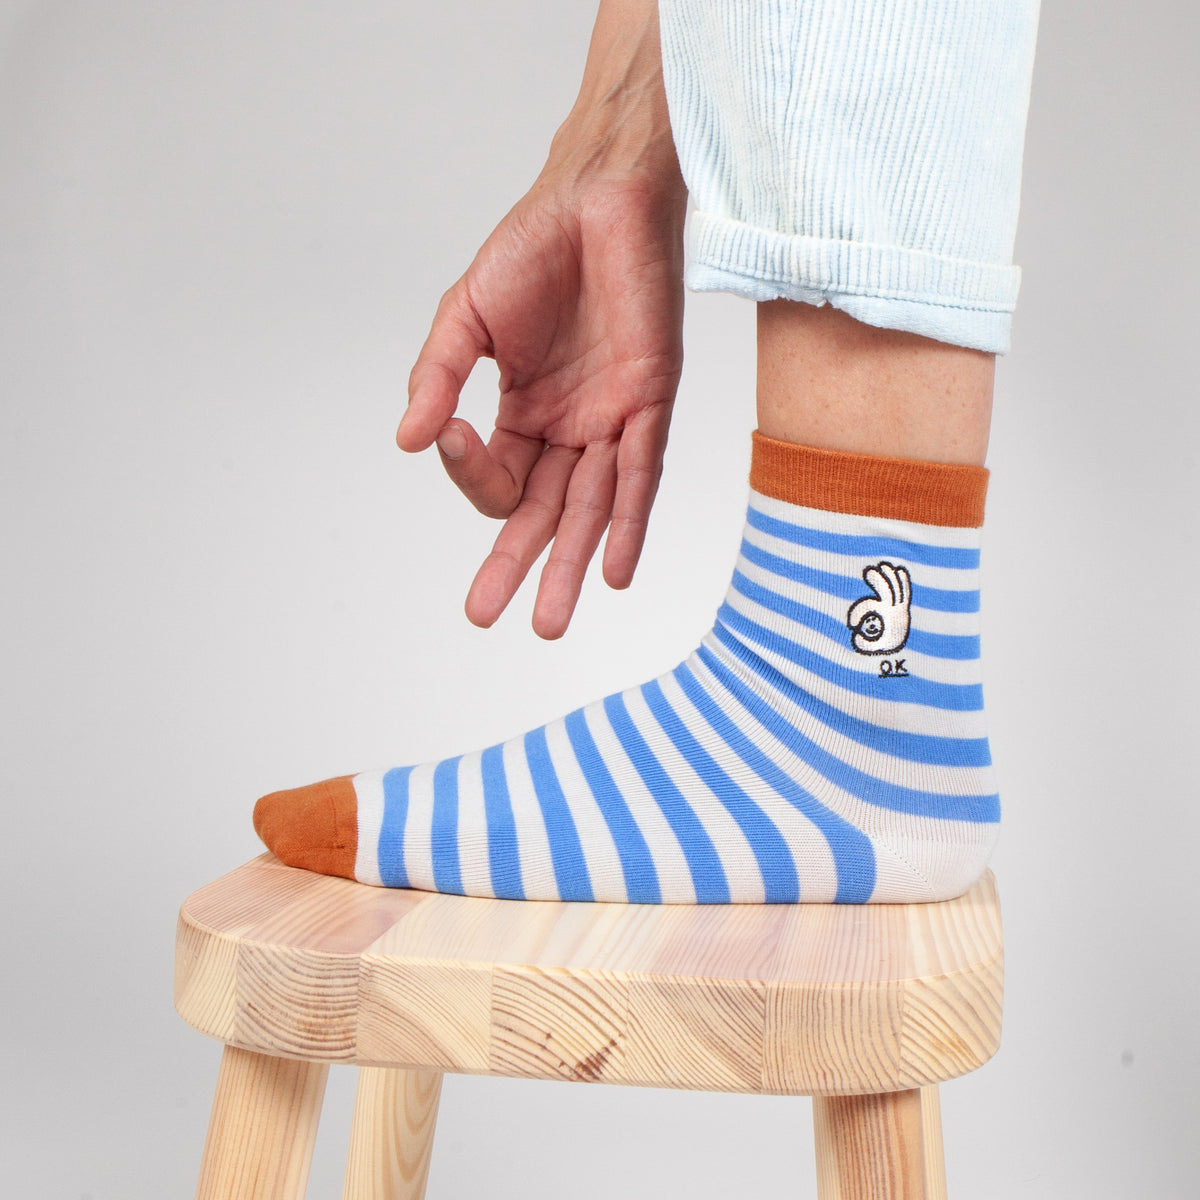 SUJIN KIMM OK Socks Slowdown Studio Makers Market Melbourne Makers' Mrkt